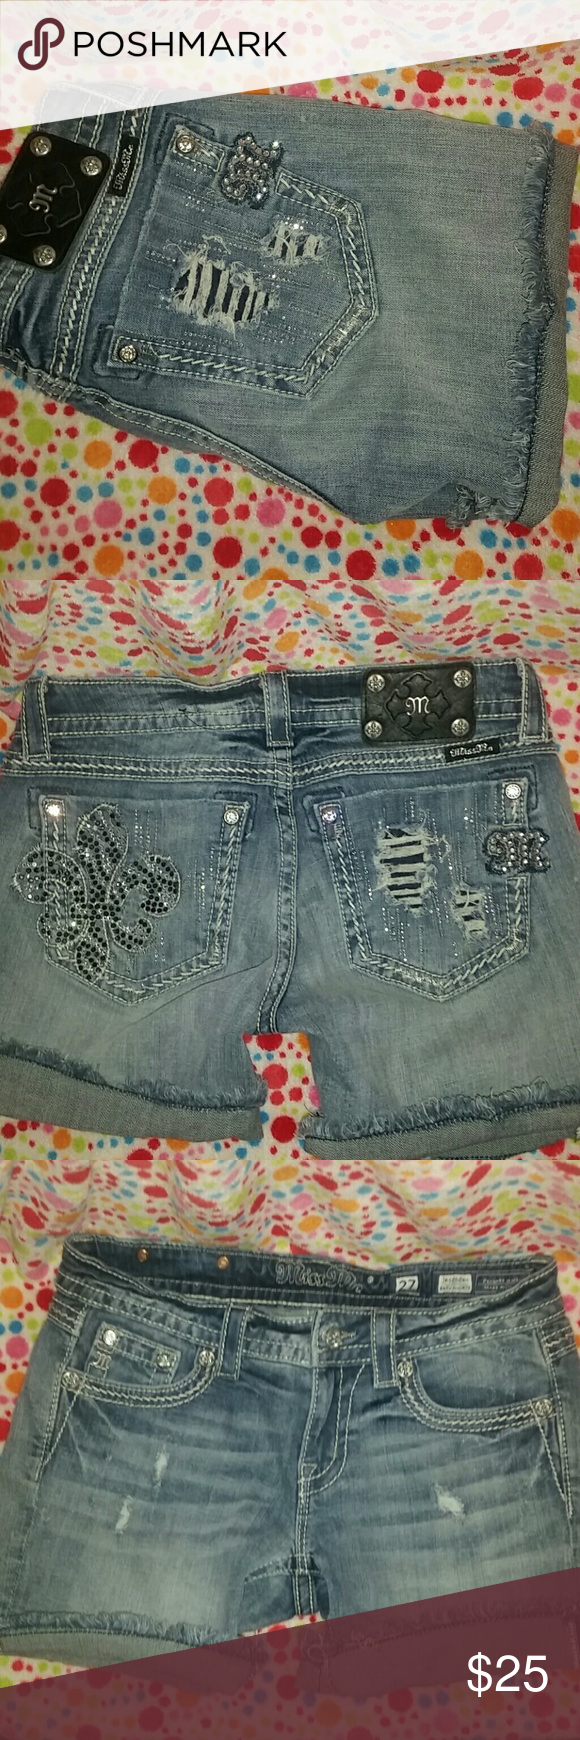 Miss Me shorts Very nice, distressed style Miss Me denim shorts. No unintentional flaws, just like new. Miss Me Shorts Jean Shorts